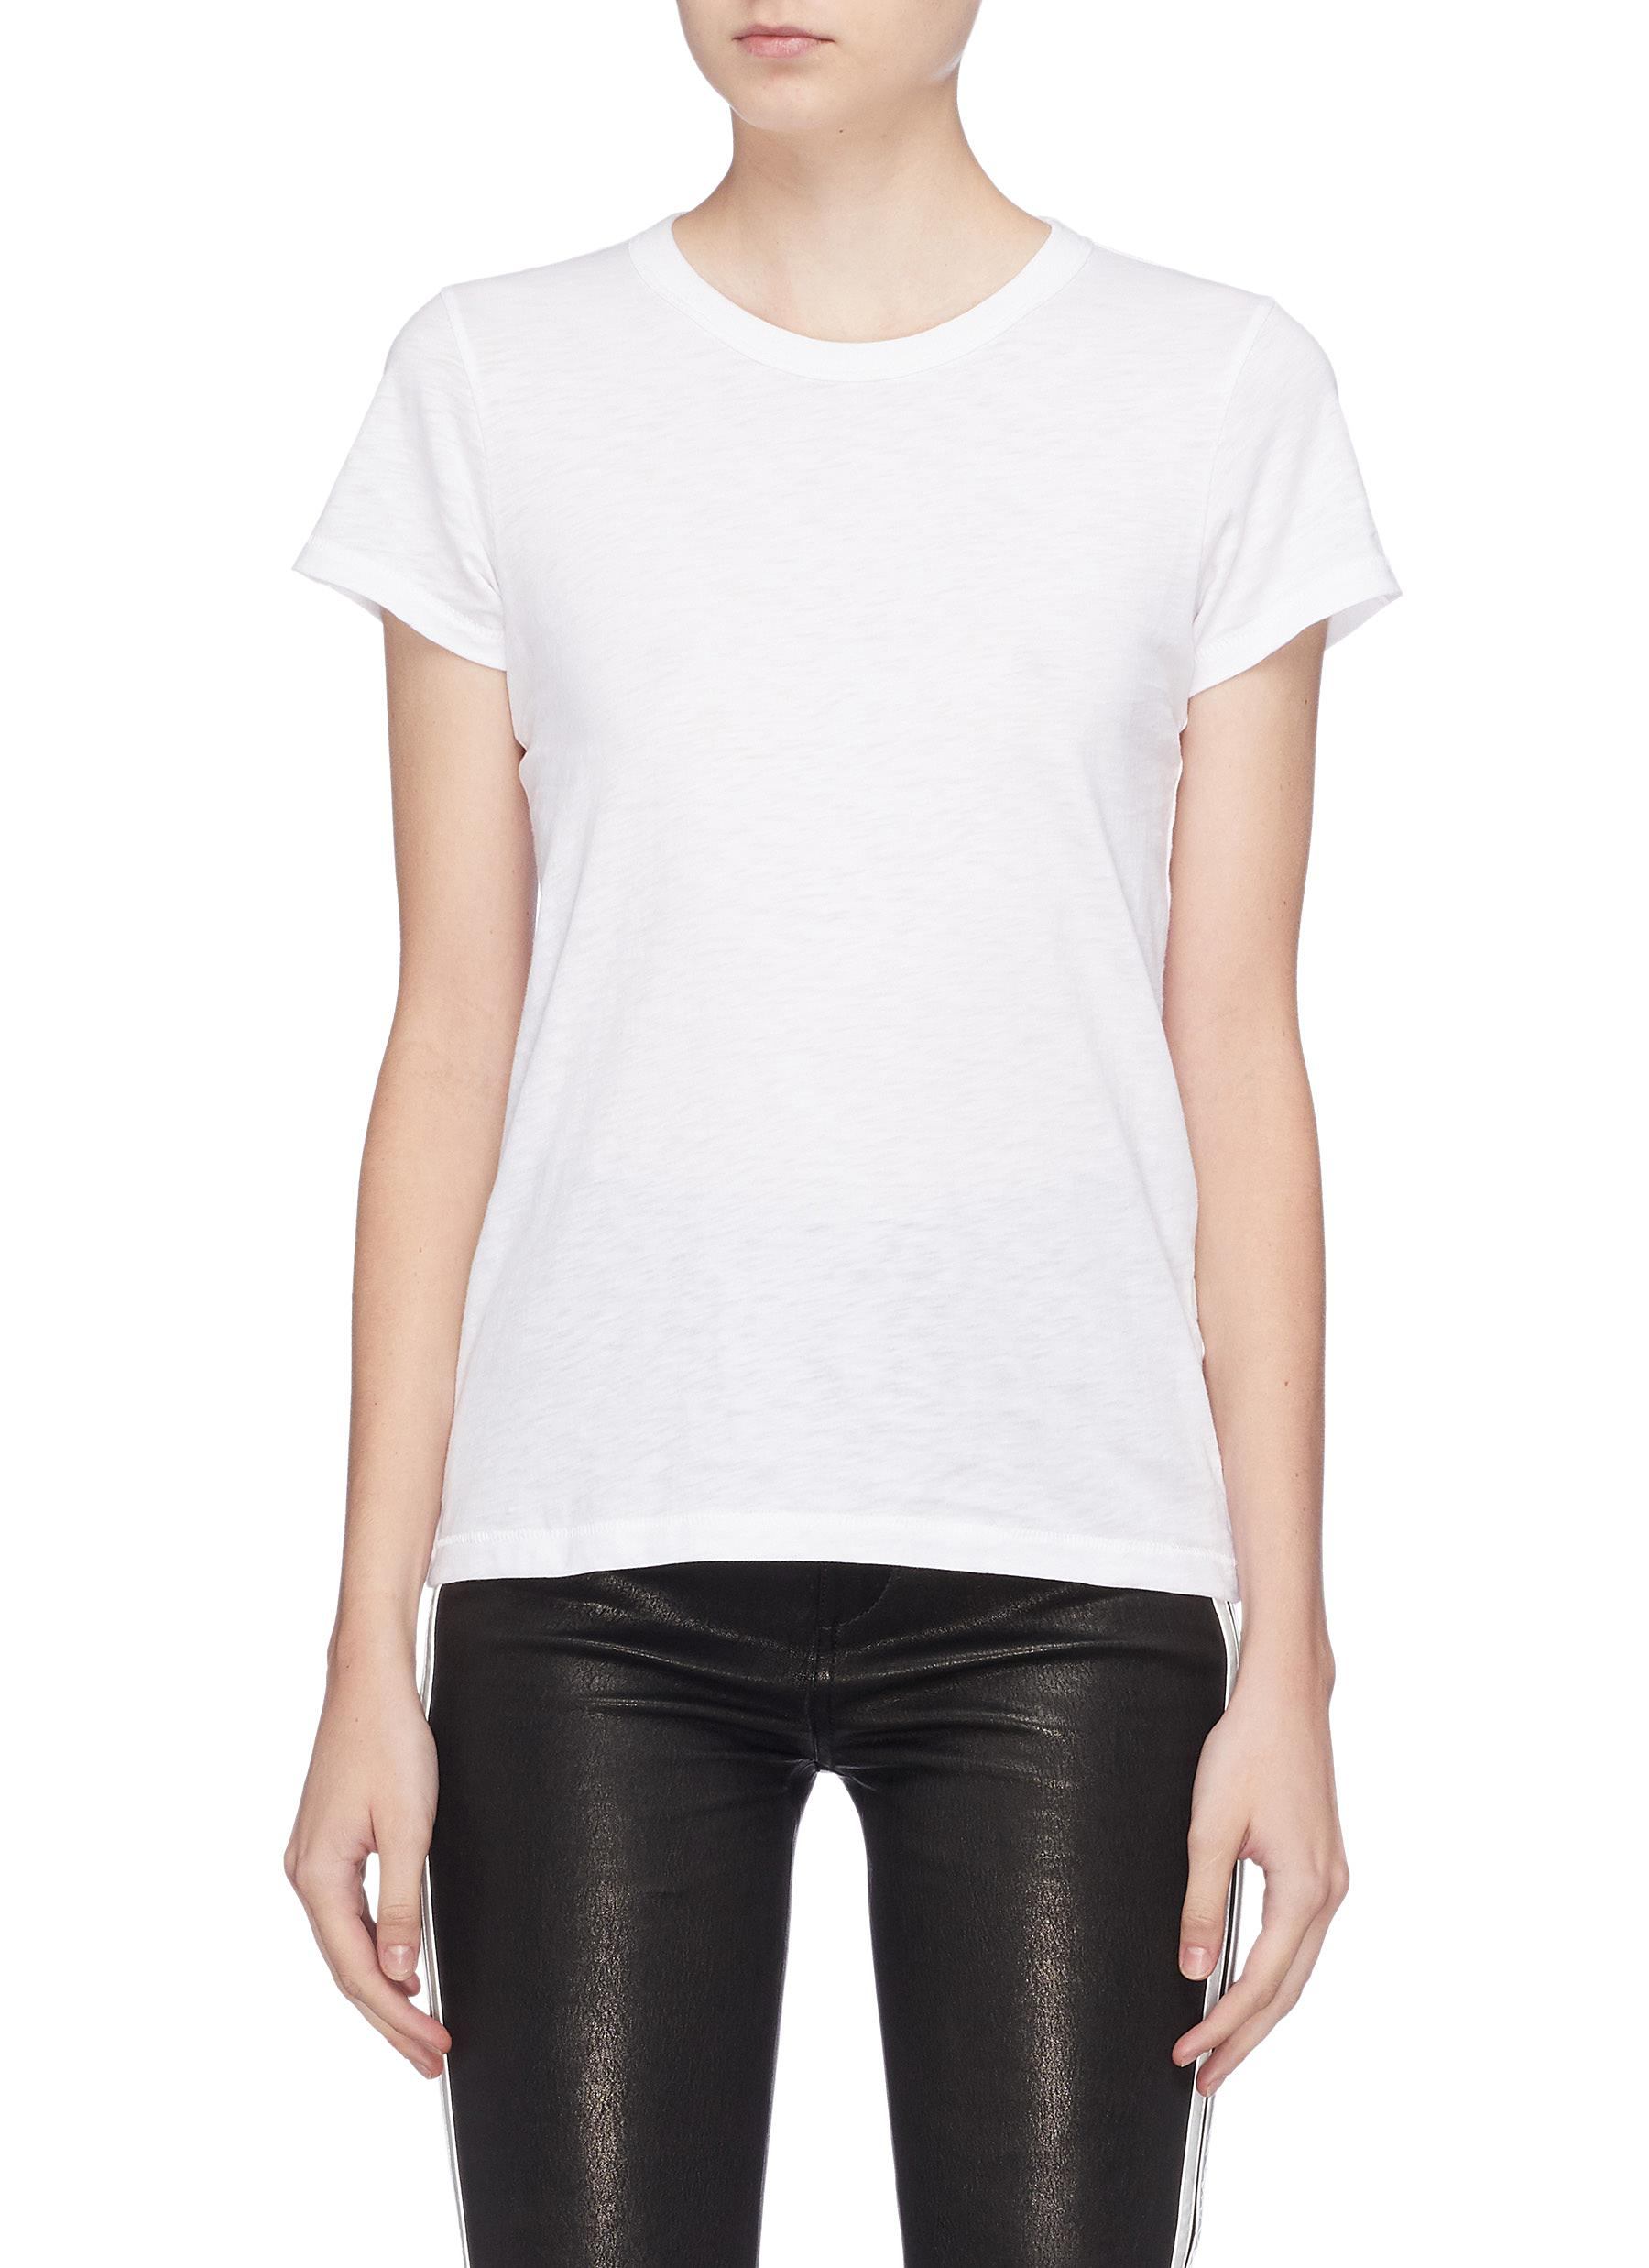 The Tee Pima cotton slub jersey T-shirt by Rag & Bone/Jean